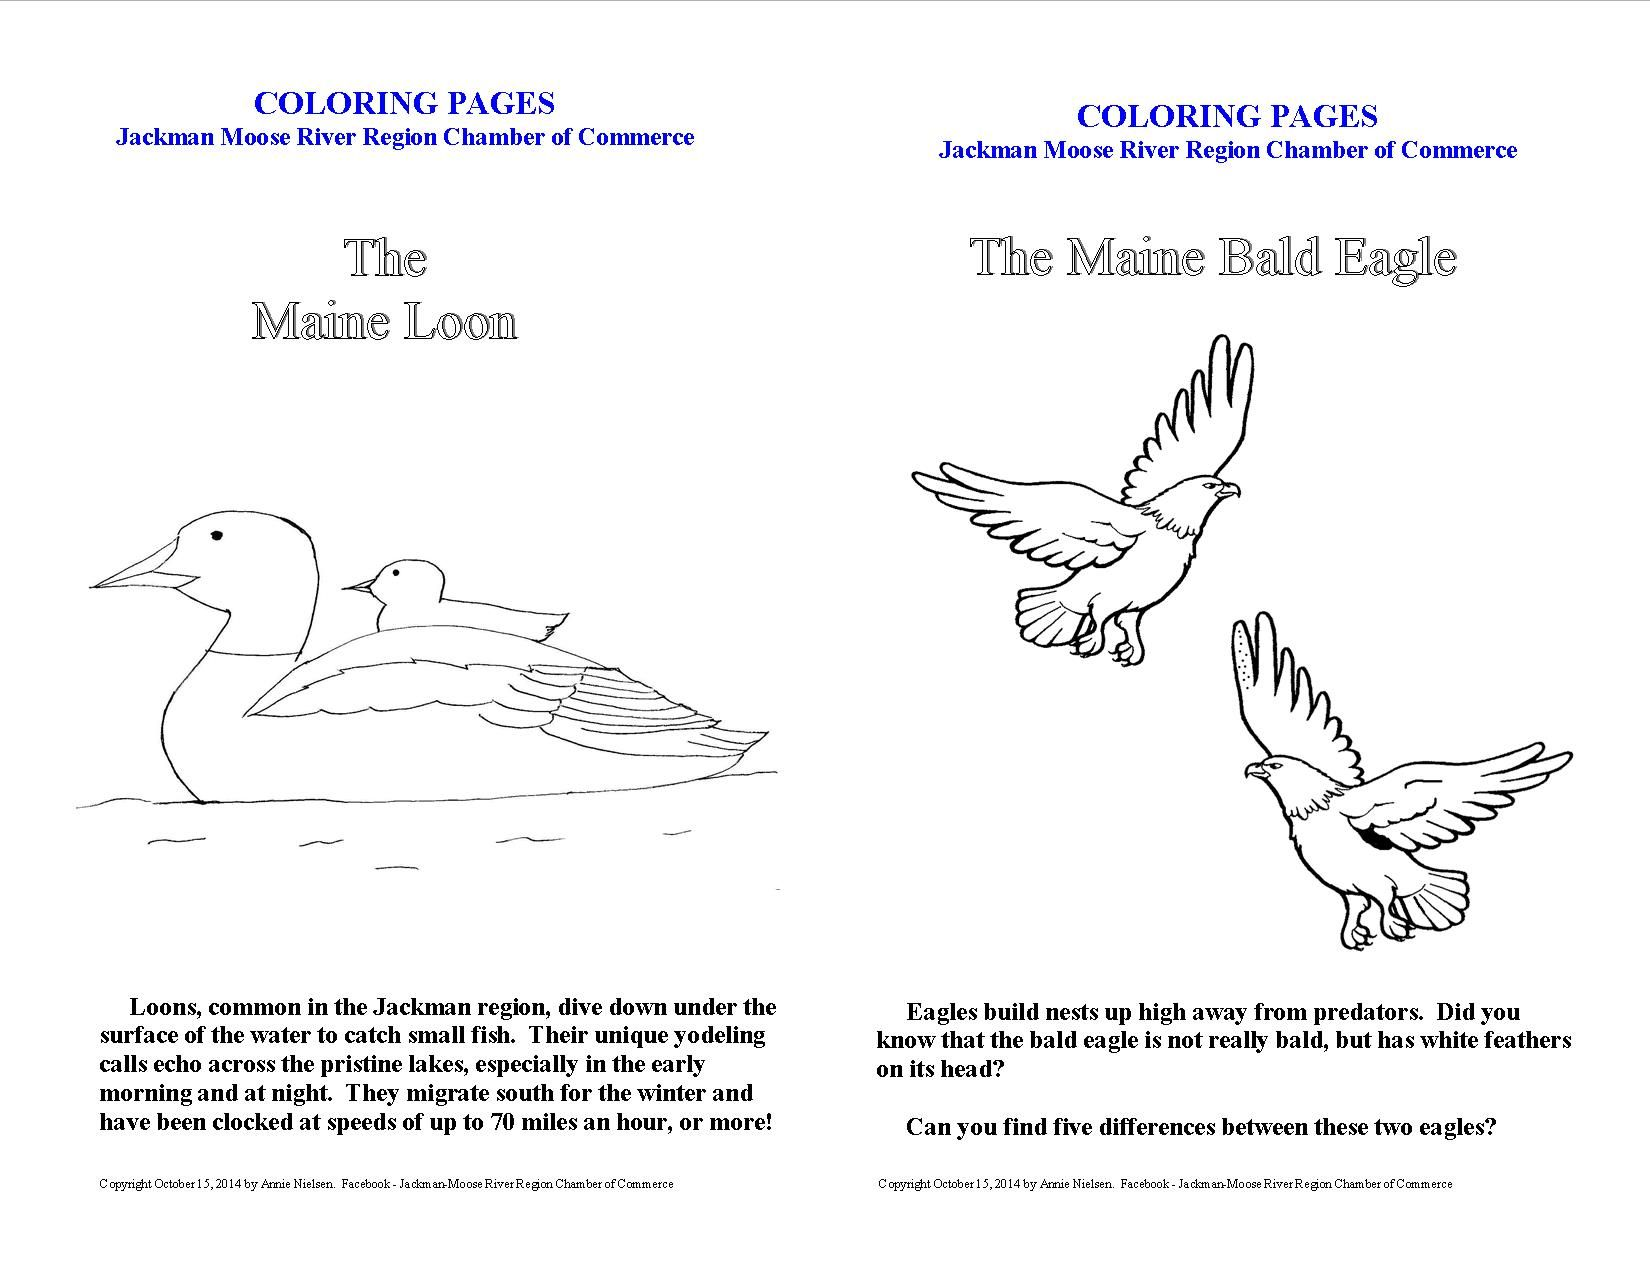 Coloring Pages for Kids ~ The bald eagle and the loon | Kids Stuff ...